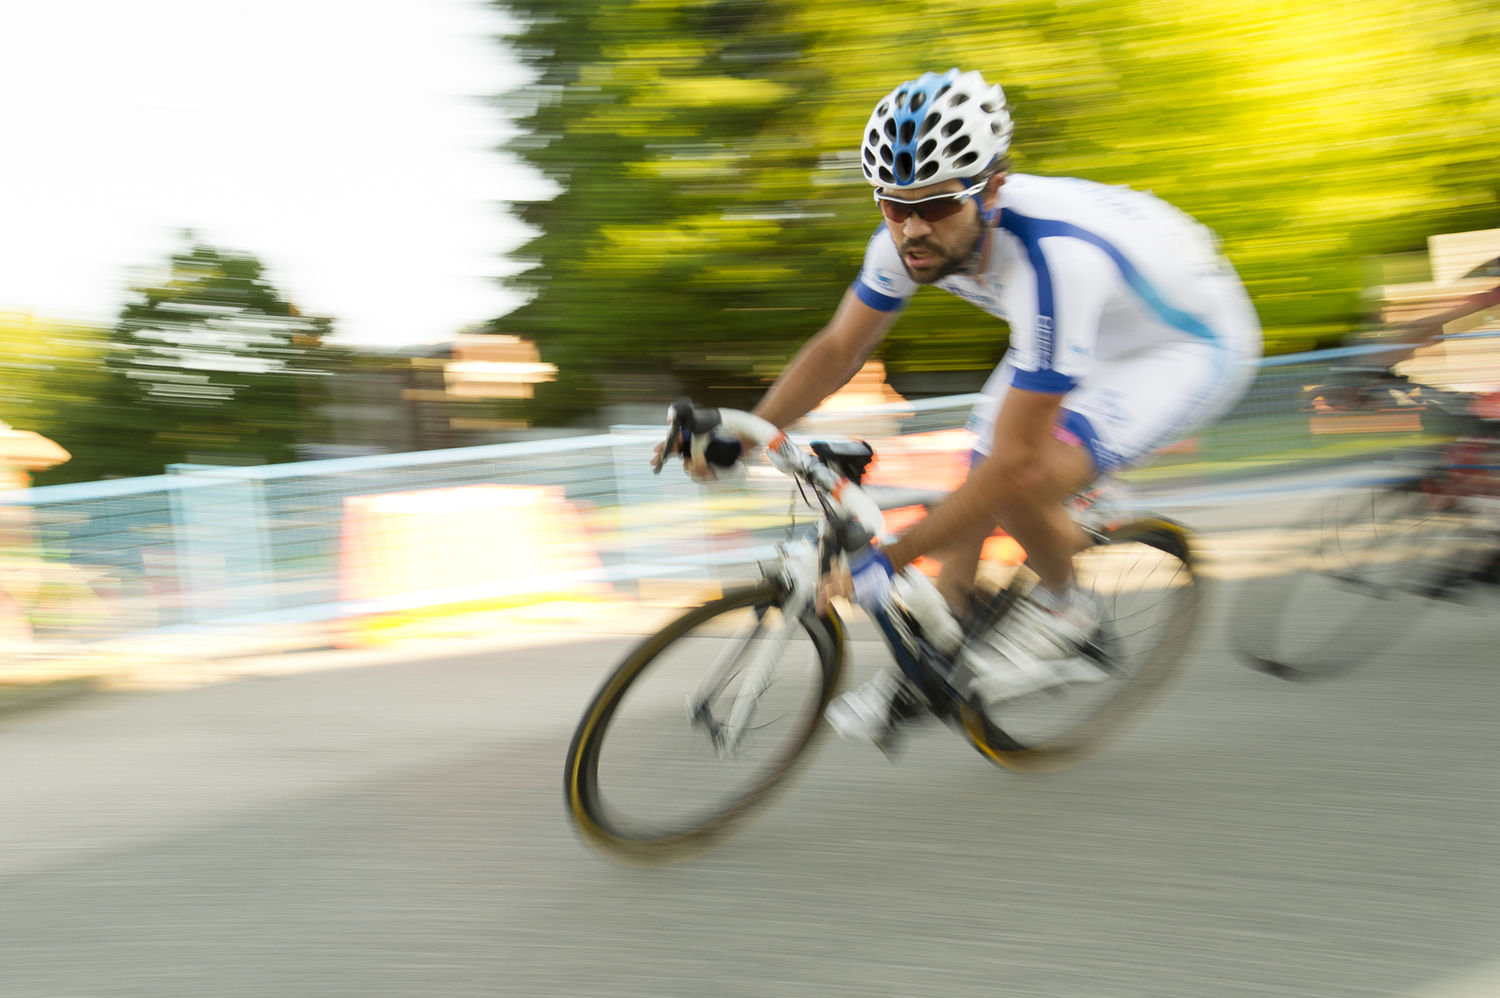 UBC Grand Prix- July 8, 2014